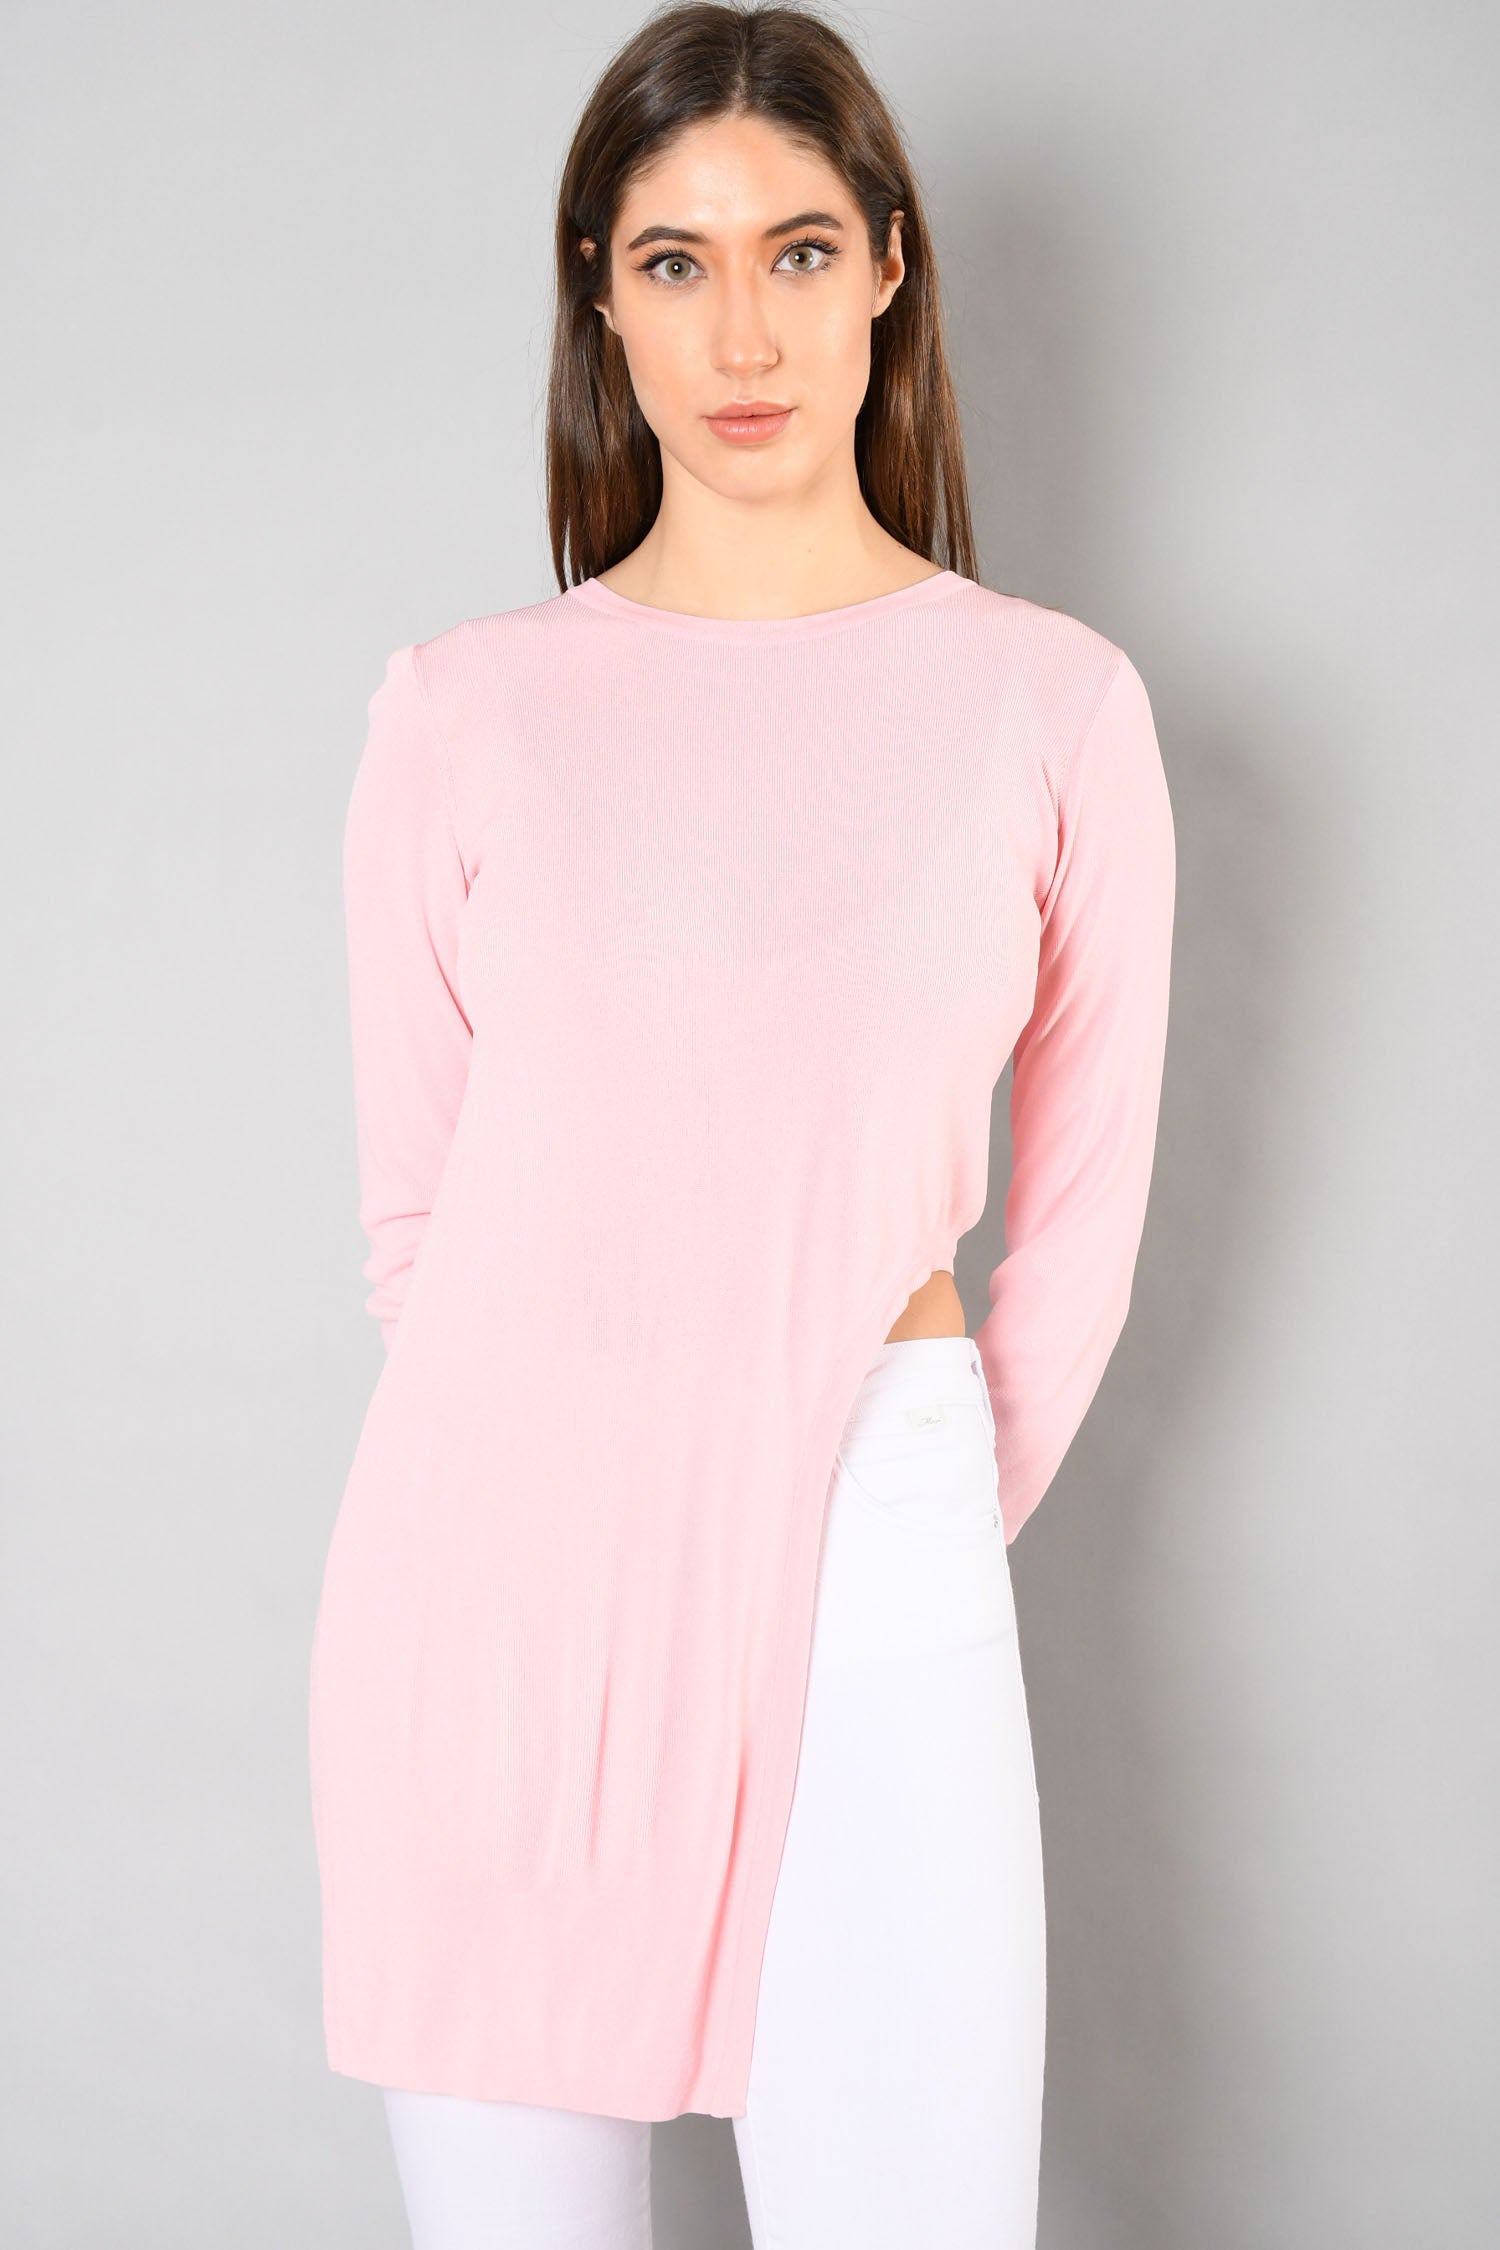 Chanel Baby Pink Asymmetrical Top Size 38